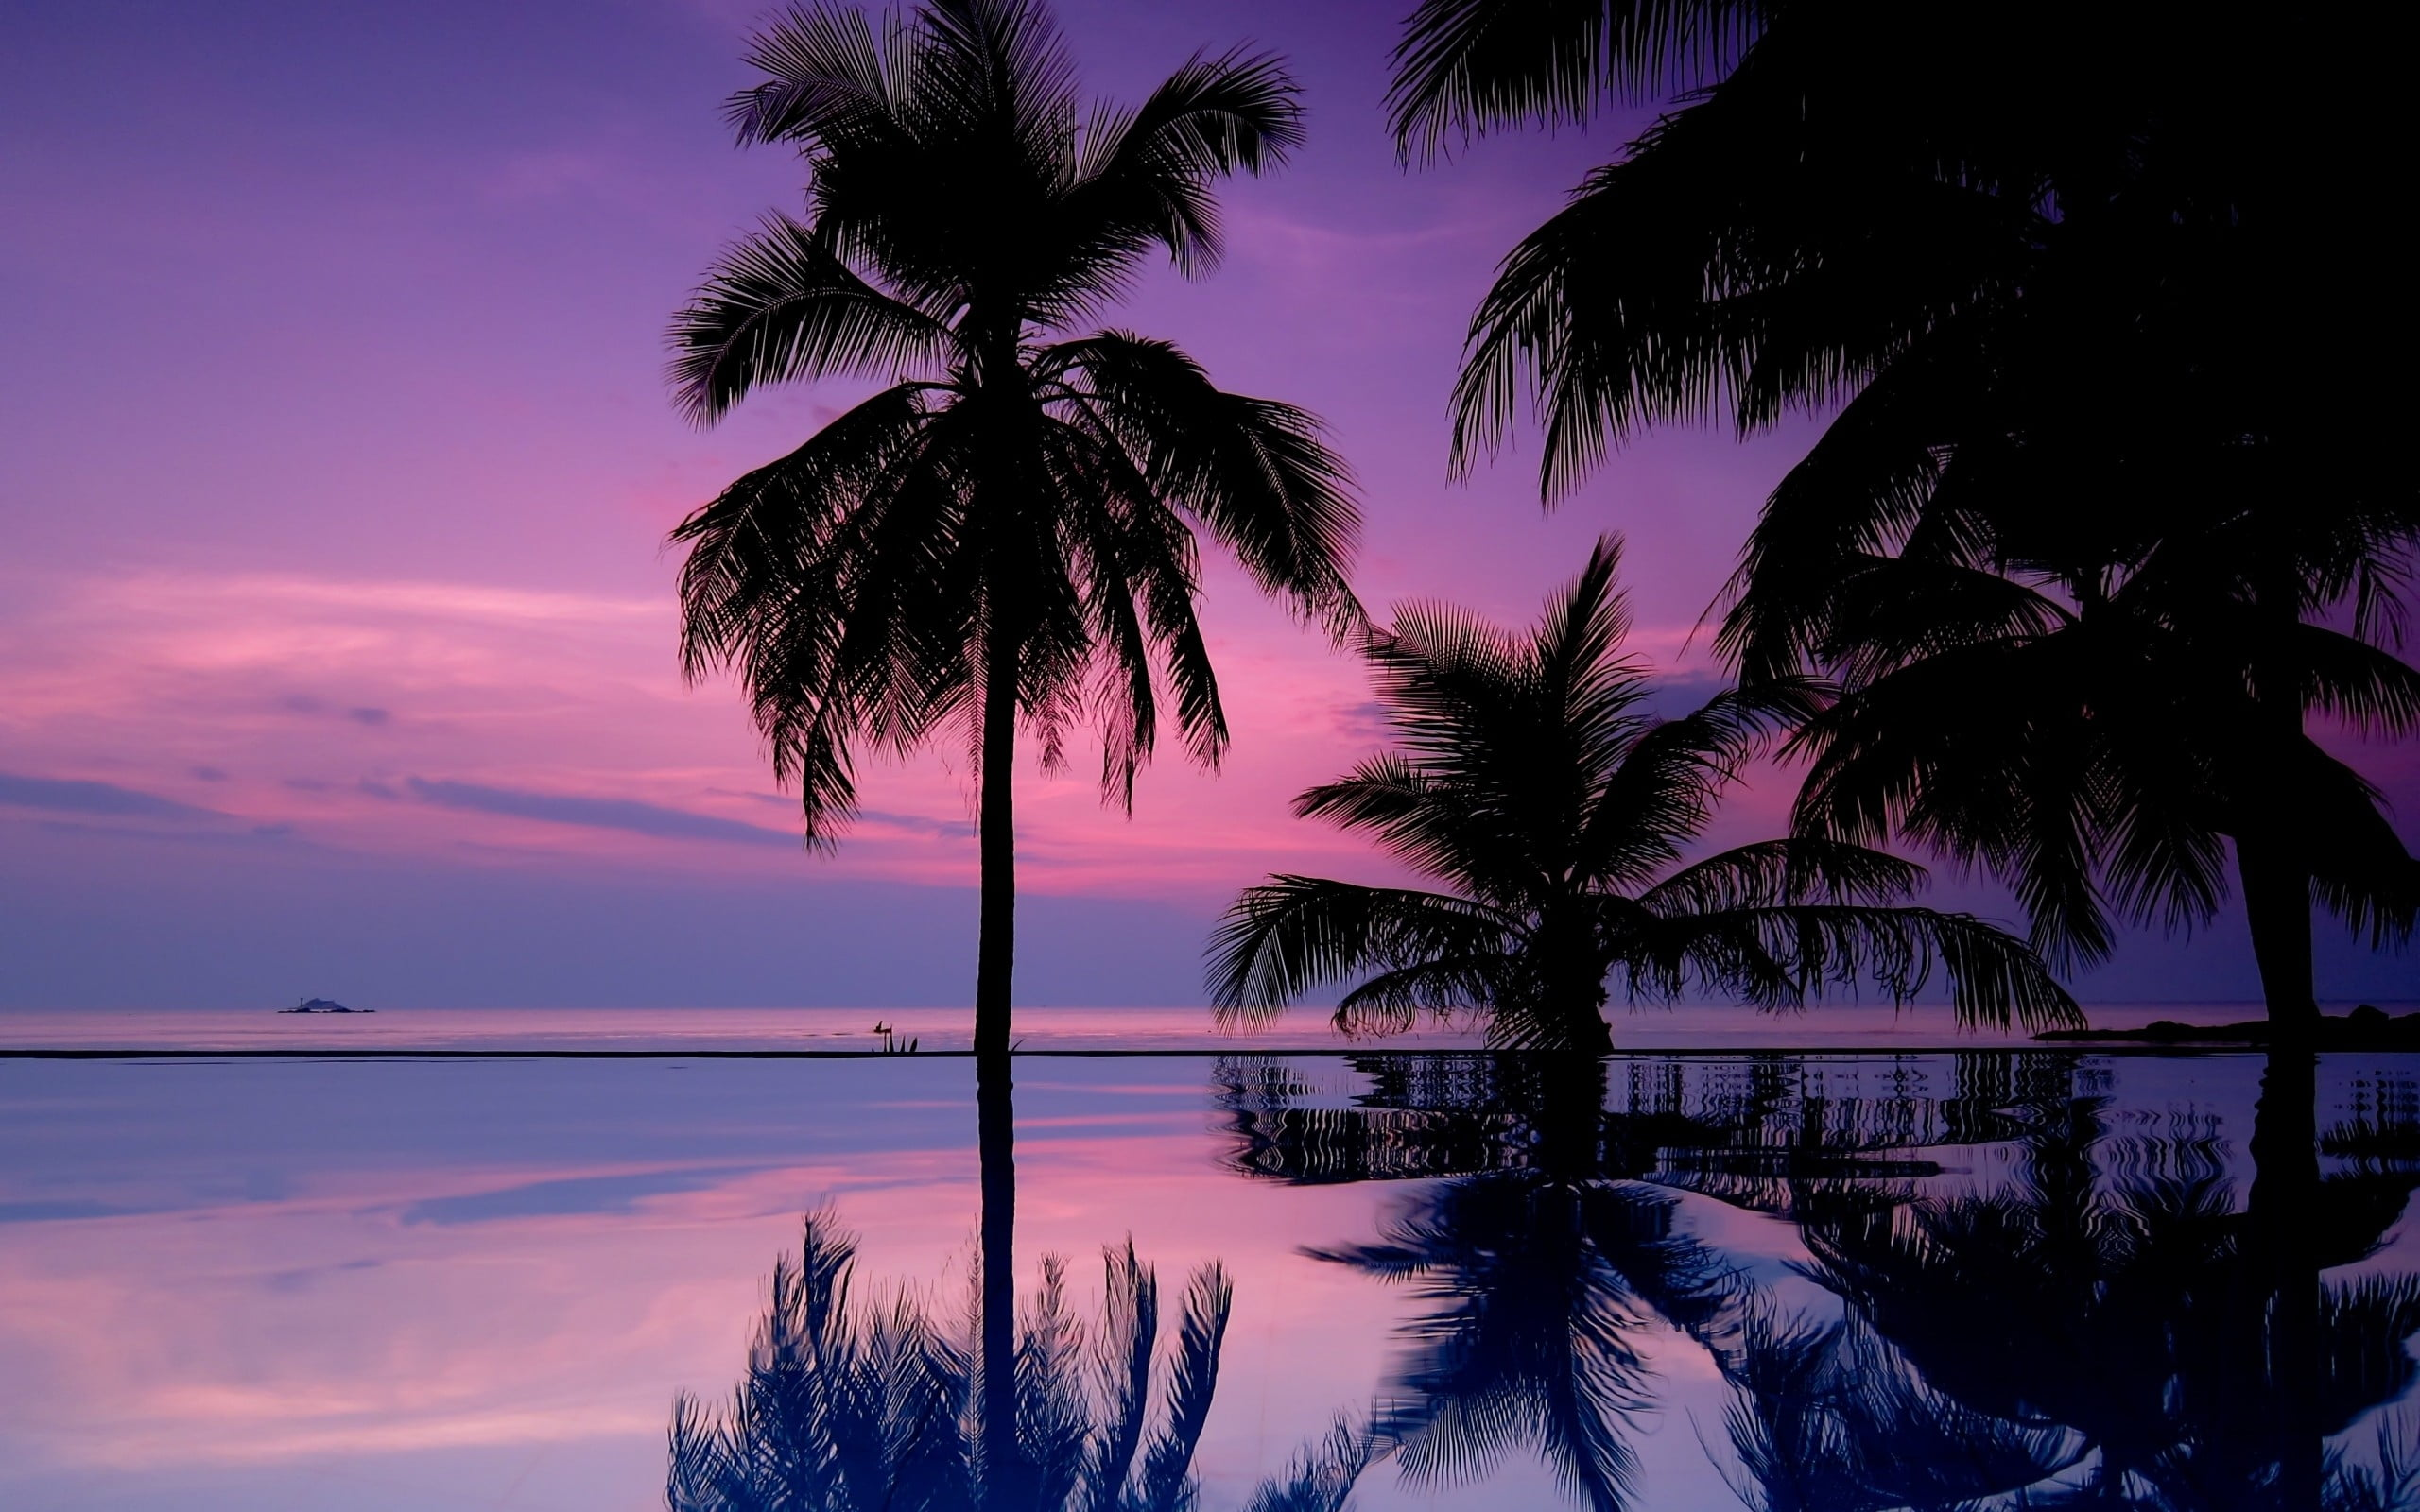 Iphone 2g Wallpaper Body Of Water With Coconut Trees During Sunset Hd